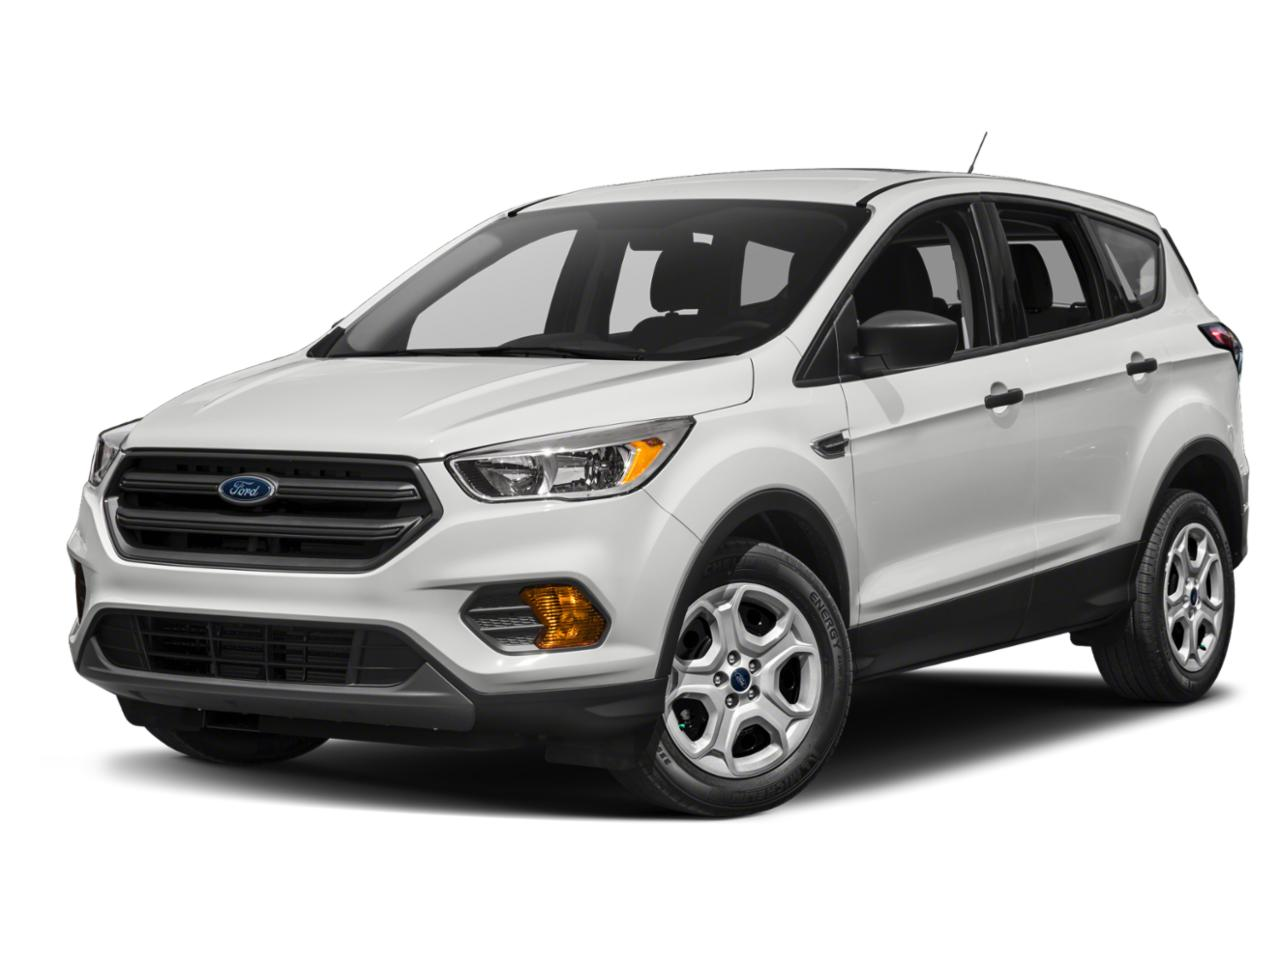 2019 Ford Escape Vehicle Photo in Chickasha, OK 73018